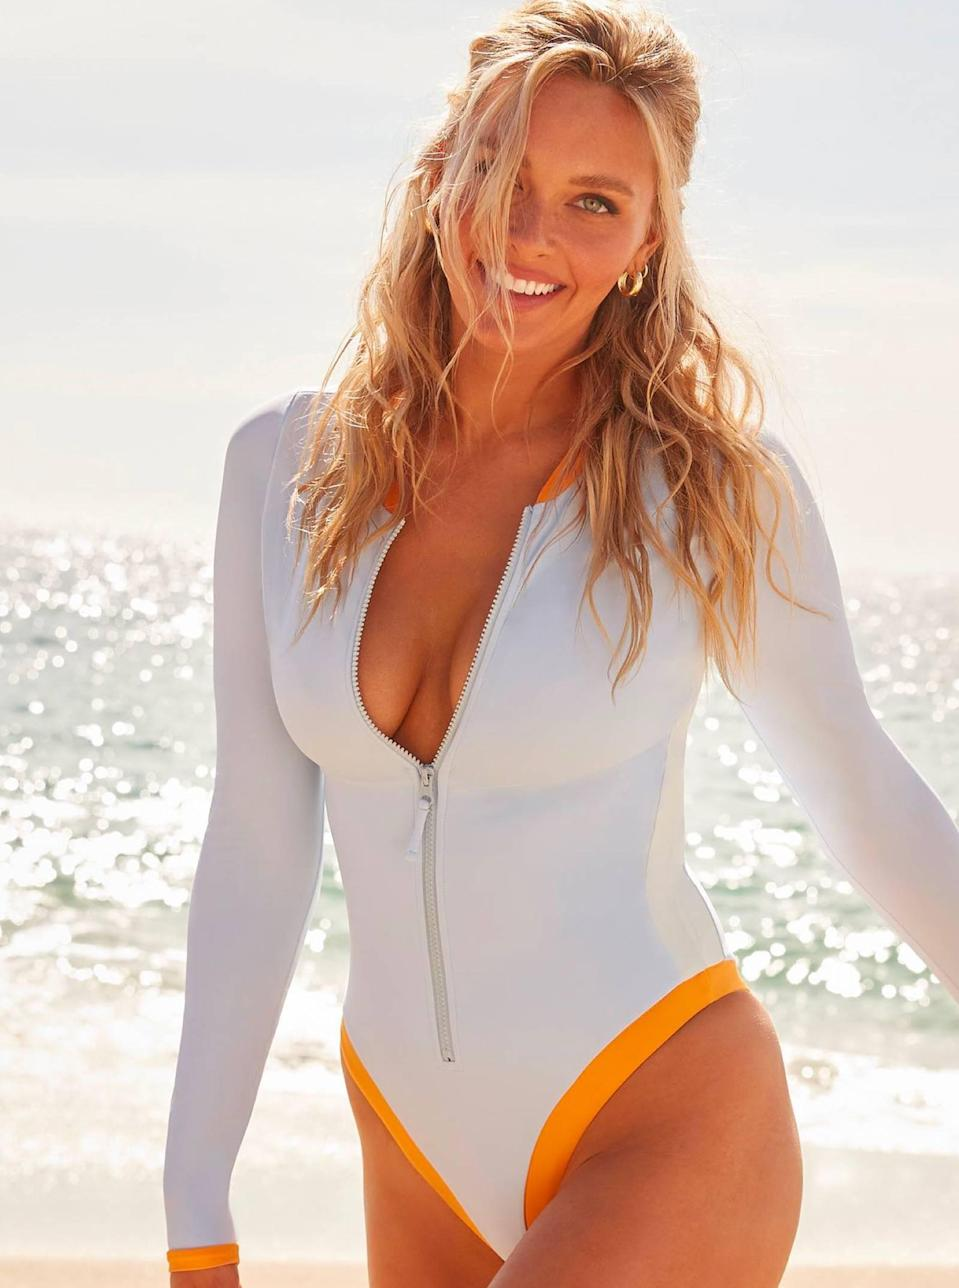 """This fully lined suit offers maximum support whether you're zipped all the way up or want to show a little skin. We love the high-cut sides and yellow trim. $120, Swimsuits For All. <a href=""""https://www.swimsuitsforall.com/products/camille-kostek-blue-crush-long-sleeve-one-piece/1050646.html#"""" rel=""""nofollow noopener"""" target=""""_blank"""" data-ylk=""""slk:Get it now!"""" class=""""link rapid-noclick-resp"""">Get it now!</a>"""